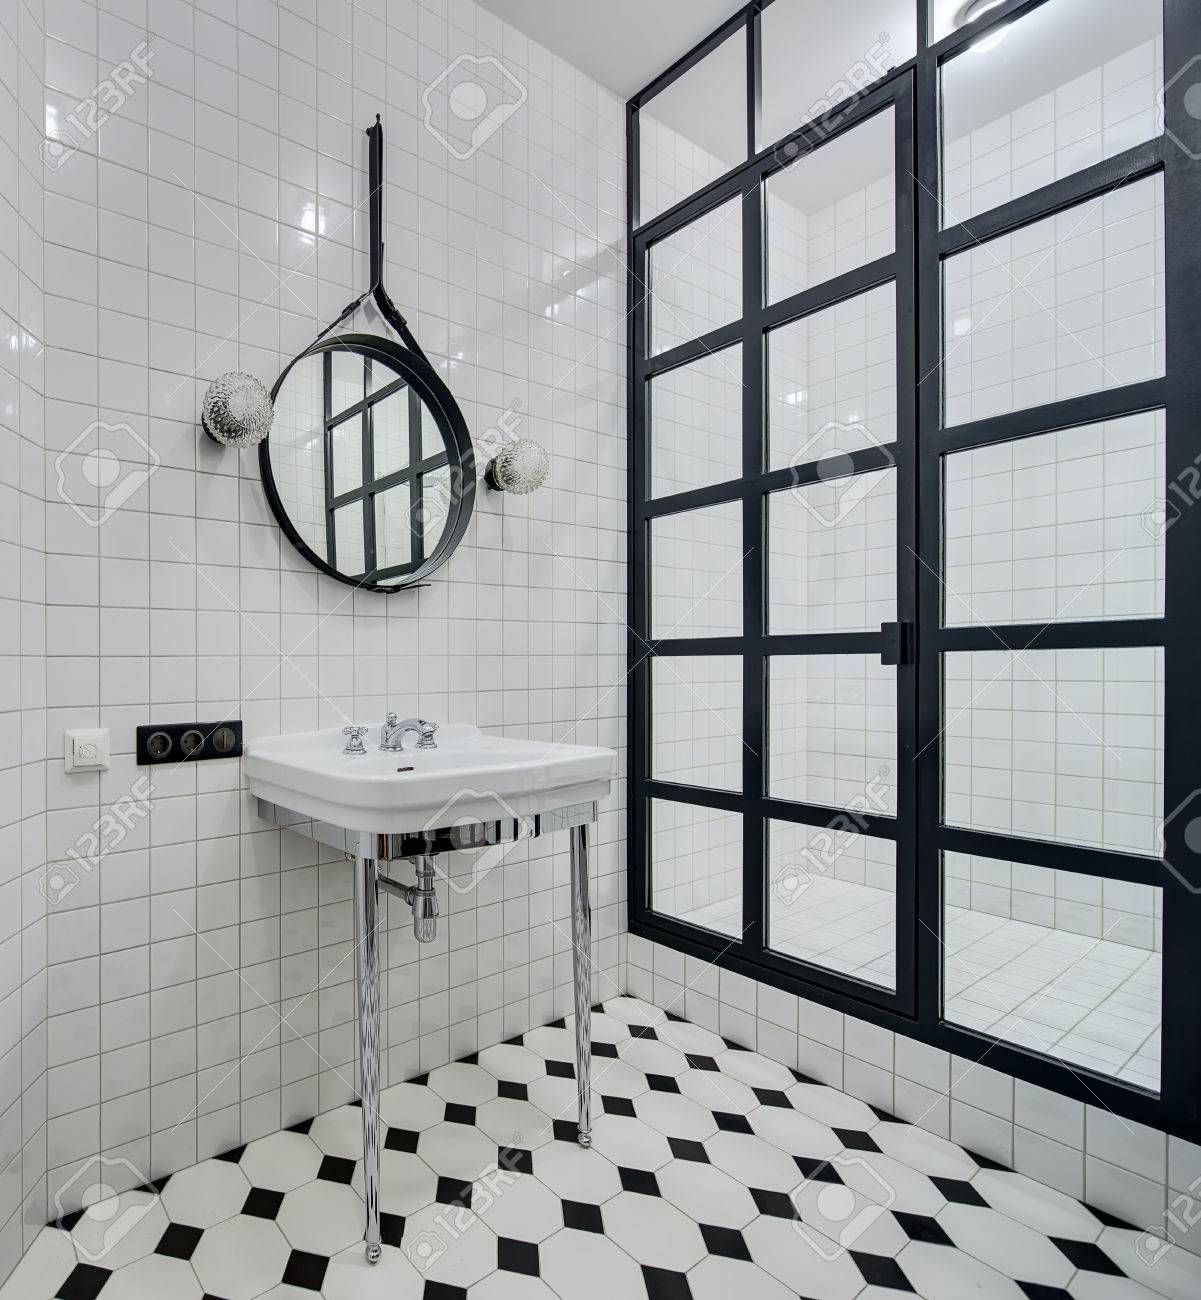 Design Bathroom With Walls Of White Tiles. There Is White Washbasin ...